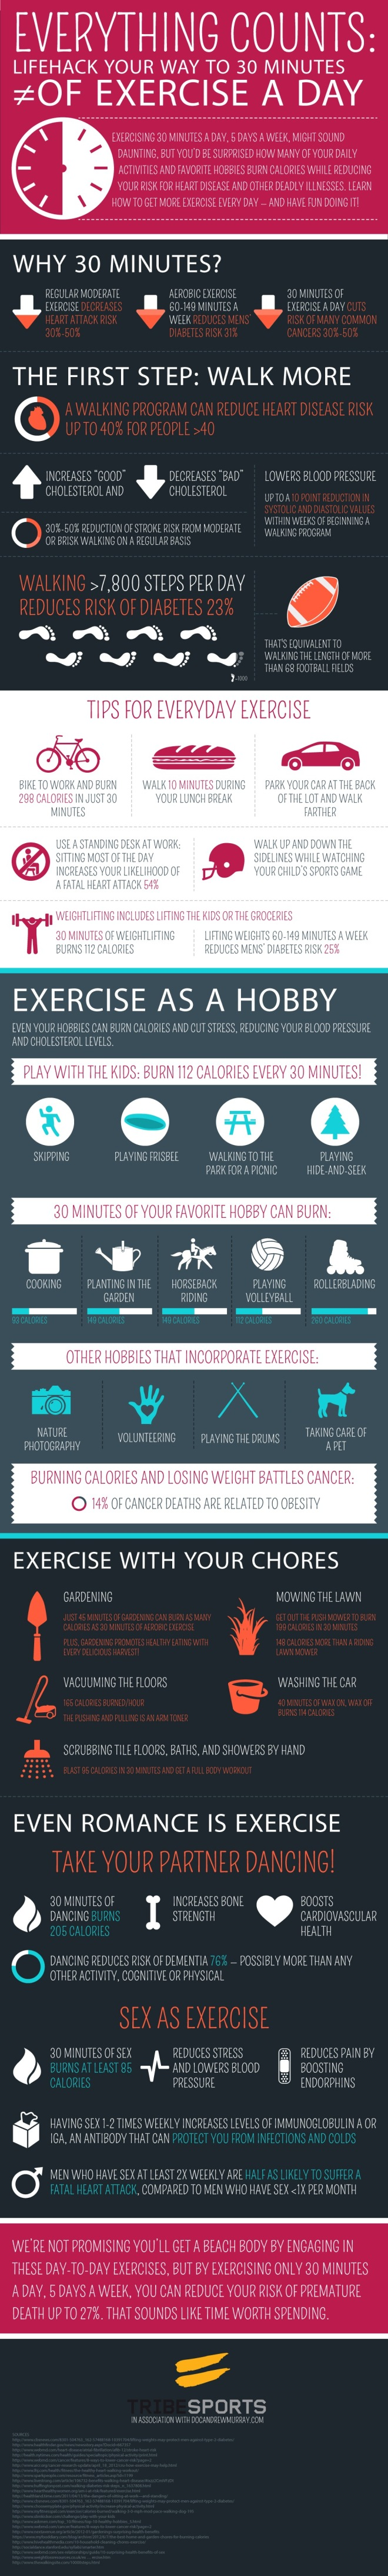 Lifehack Your Way to 30 Minutes of Exercise A Day